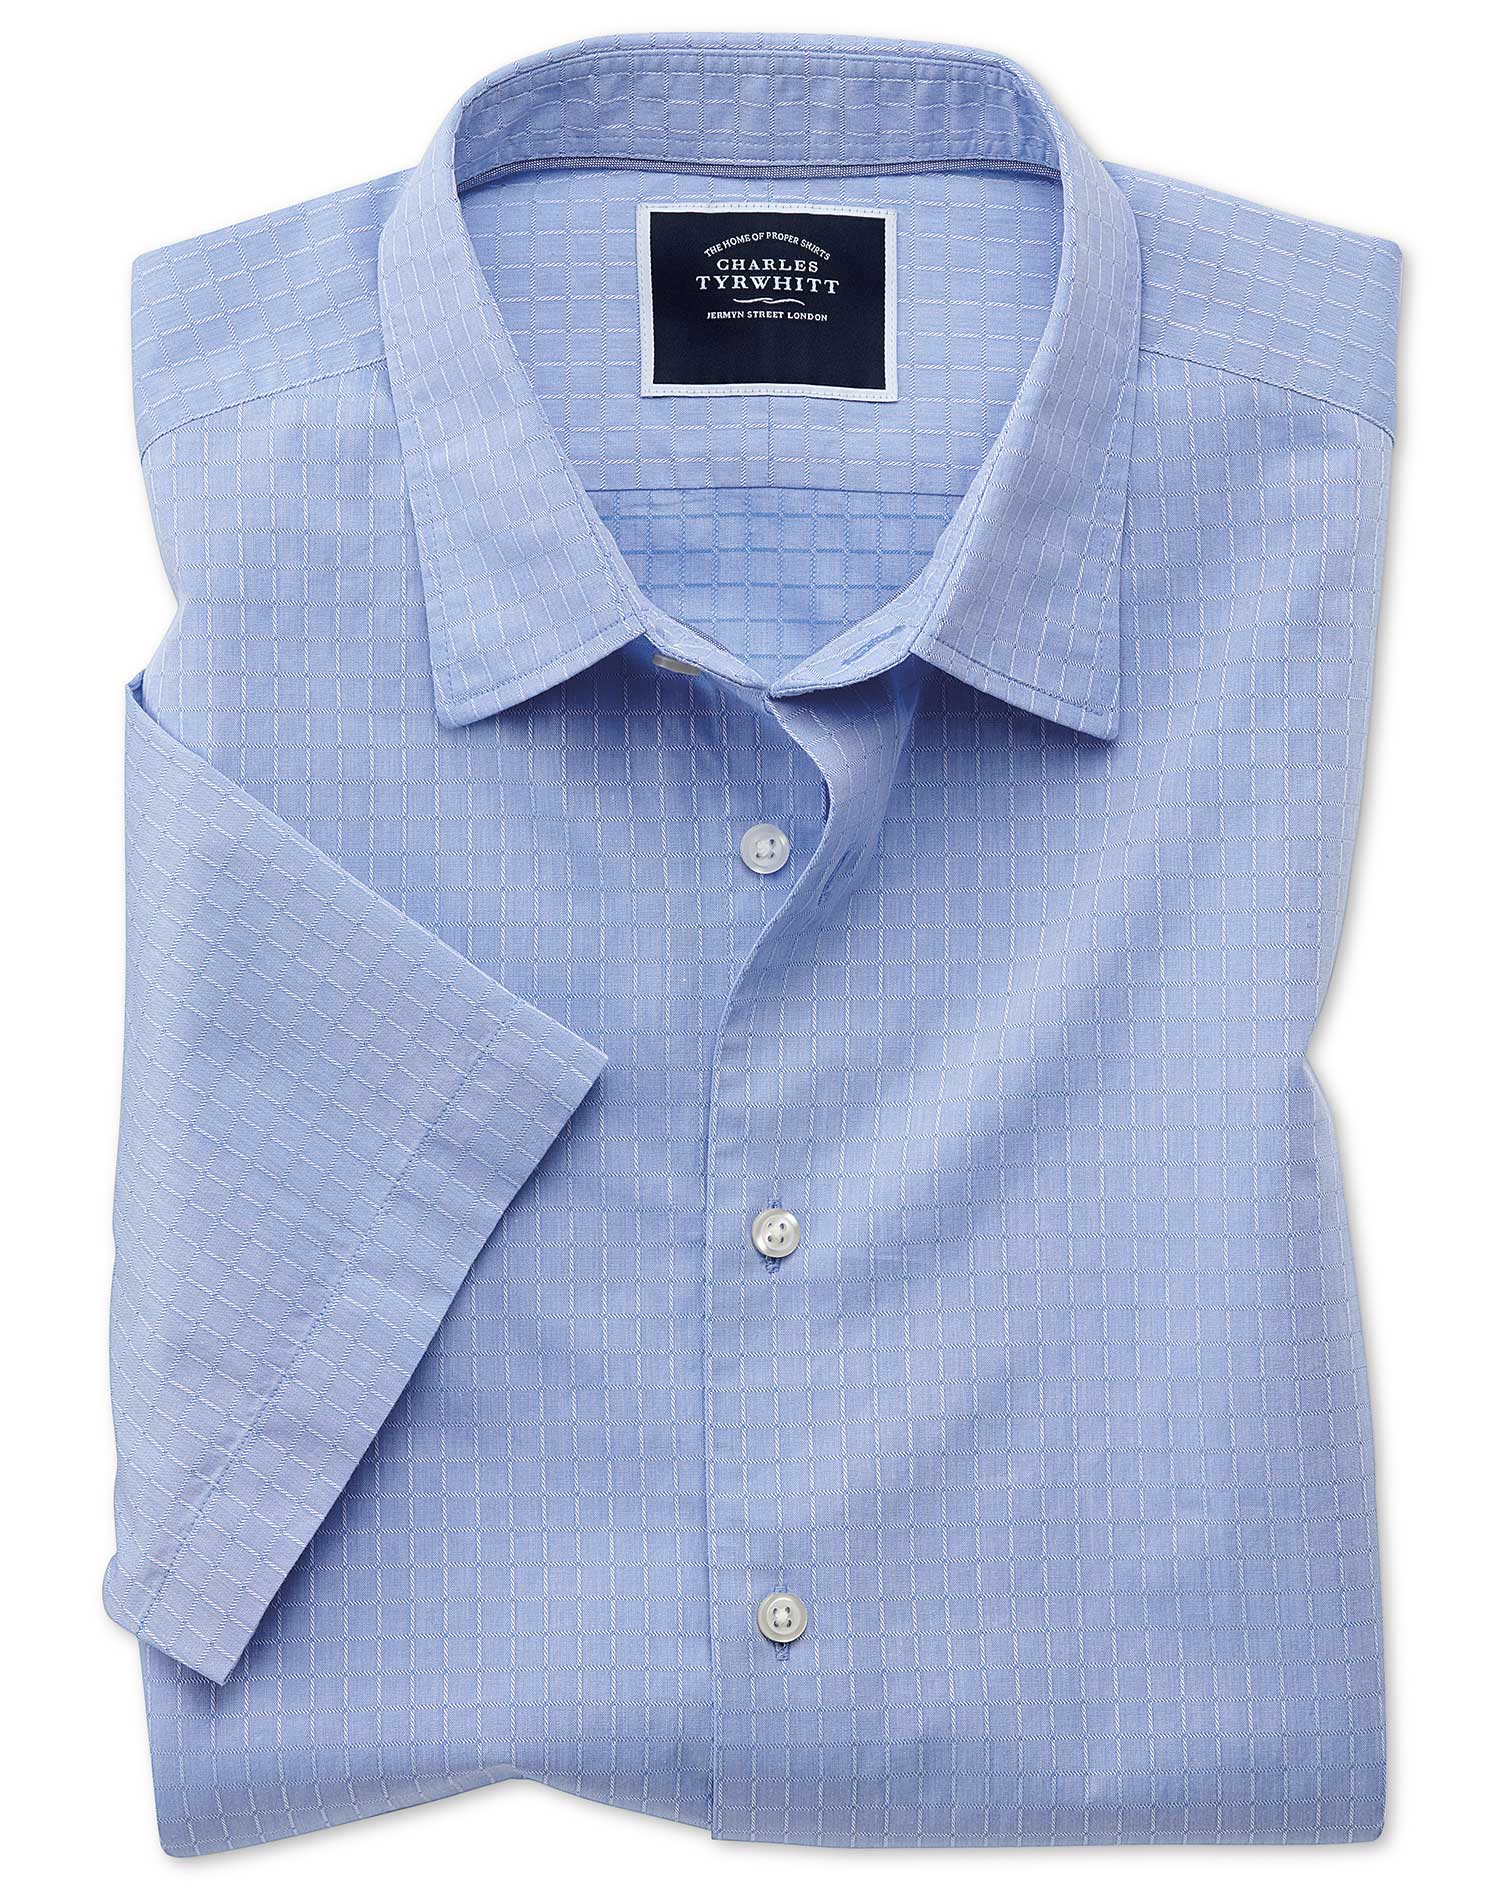 Slim Fit Blue Square Short Sleeve Soft Texture Cotton Shirt Single Cuff Size Small by Charles Tyrwhi